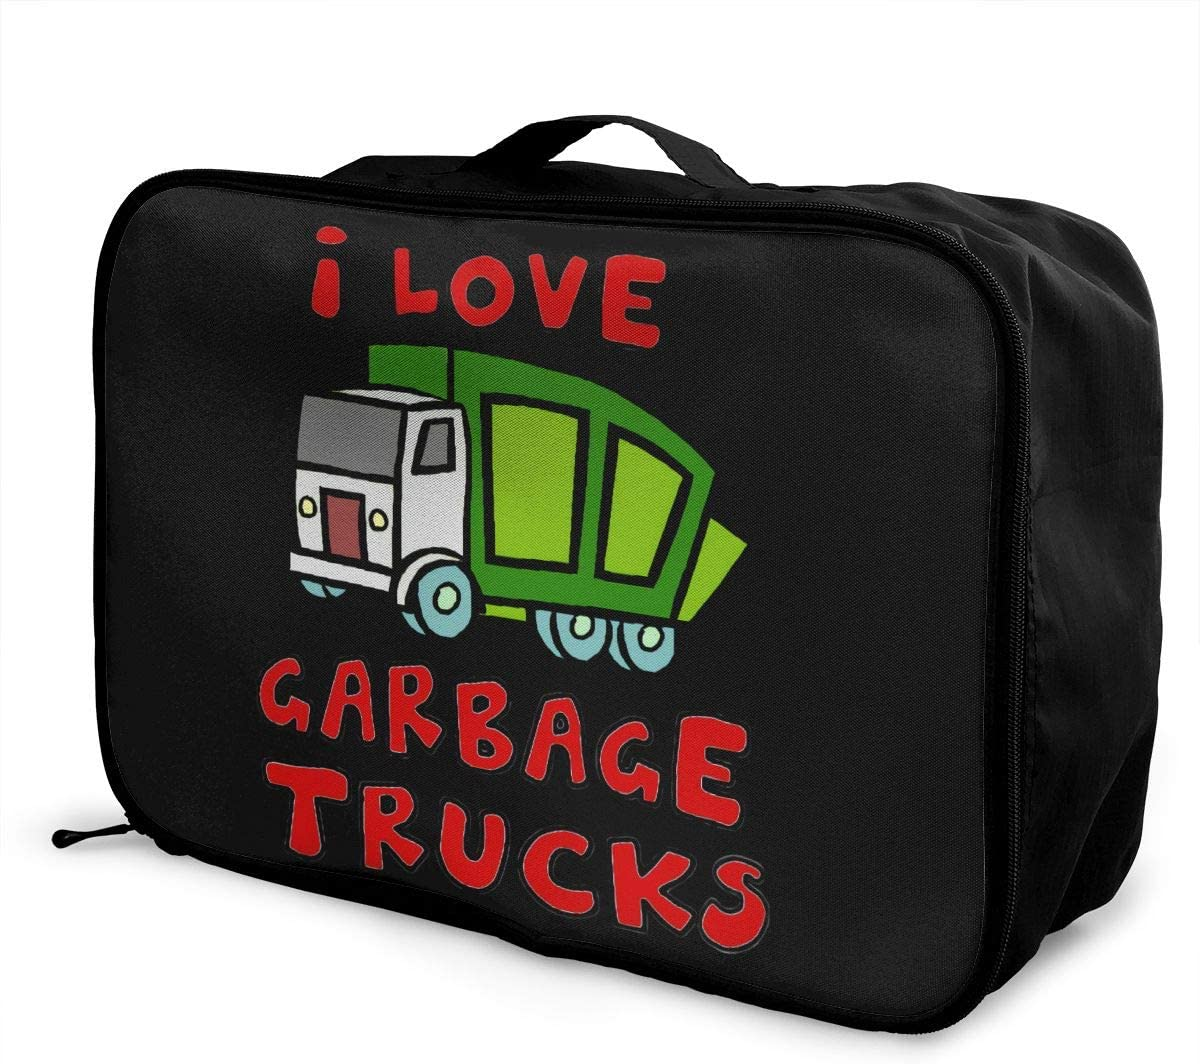 I Heart Love Garbage Trucks Lightweight Large Capacity Portable Luggage Bag Hanging Organizer Bag Makeup Bag